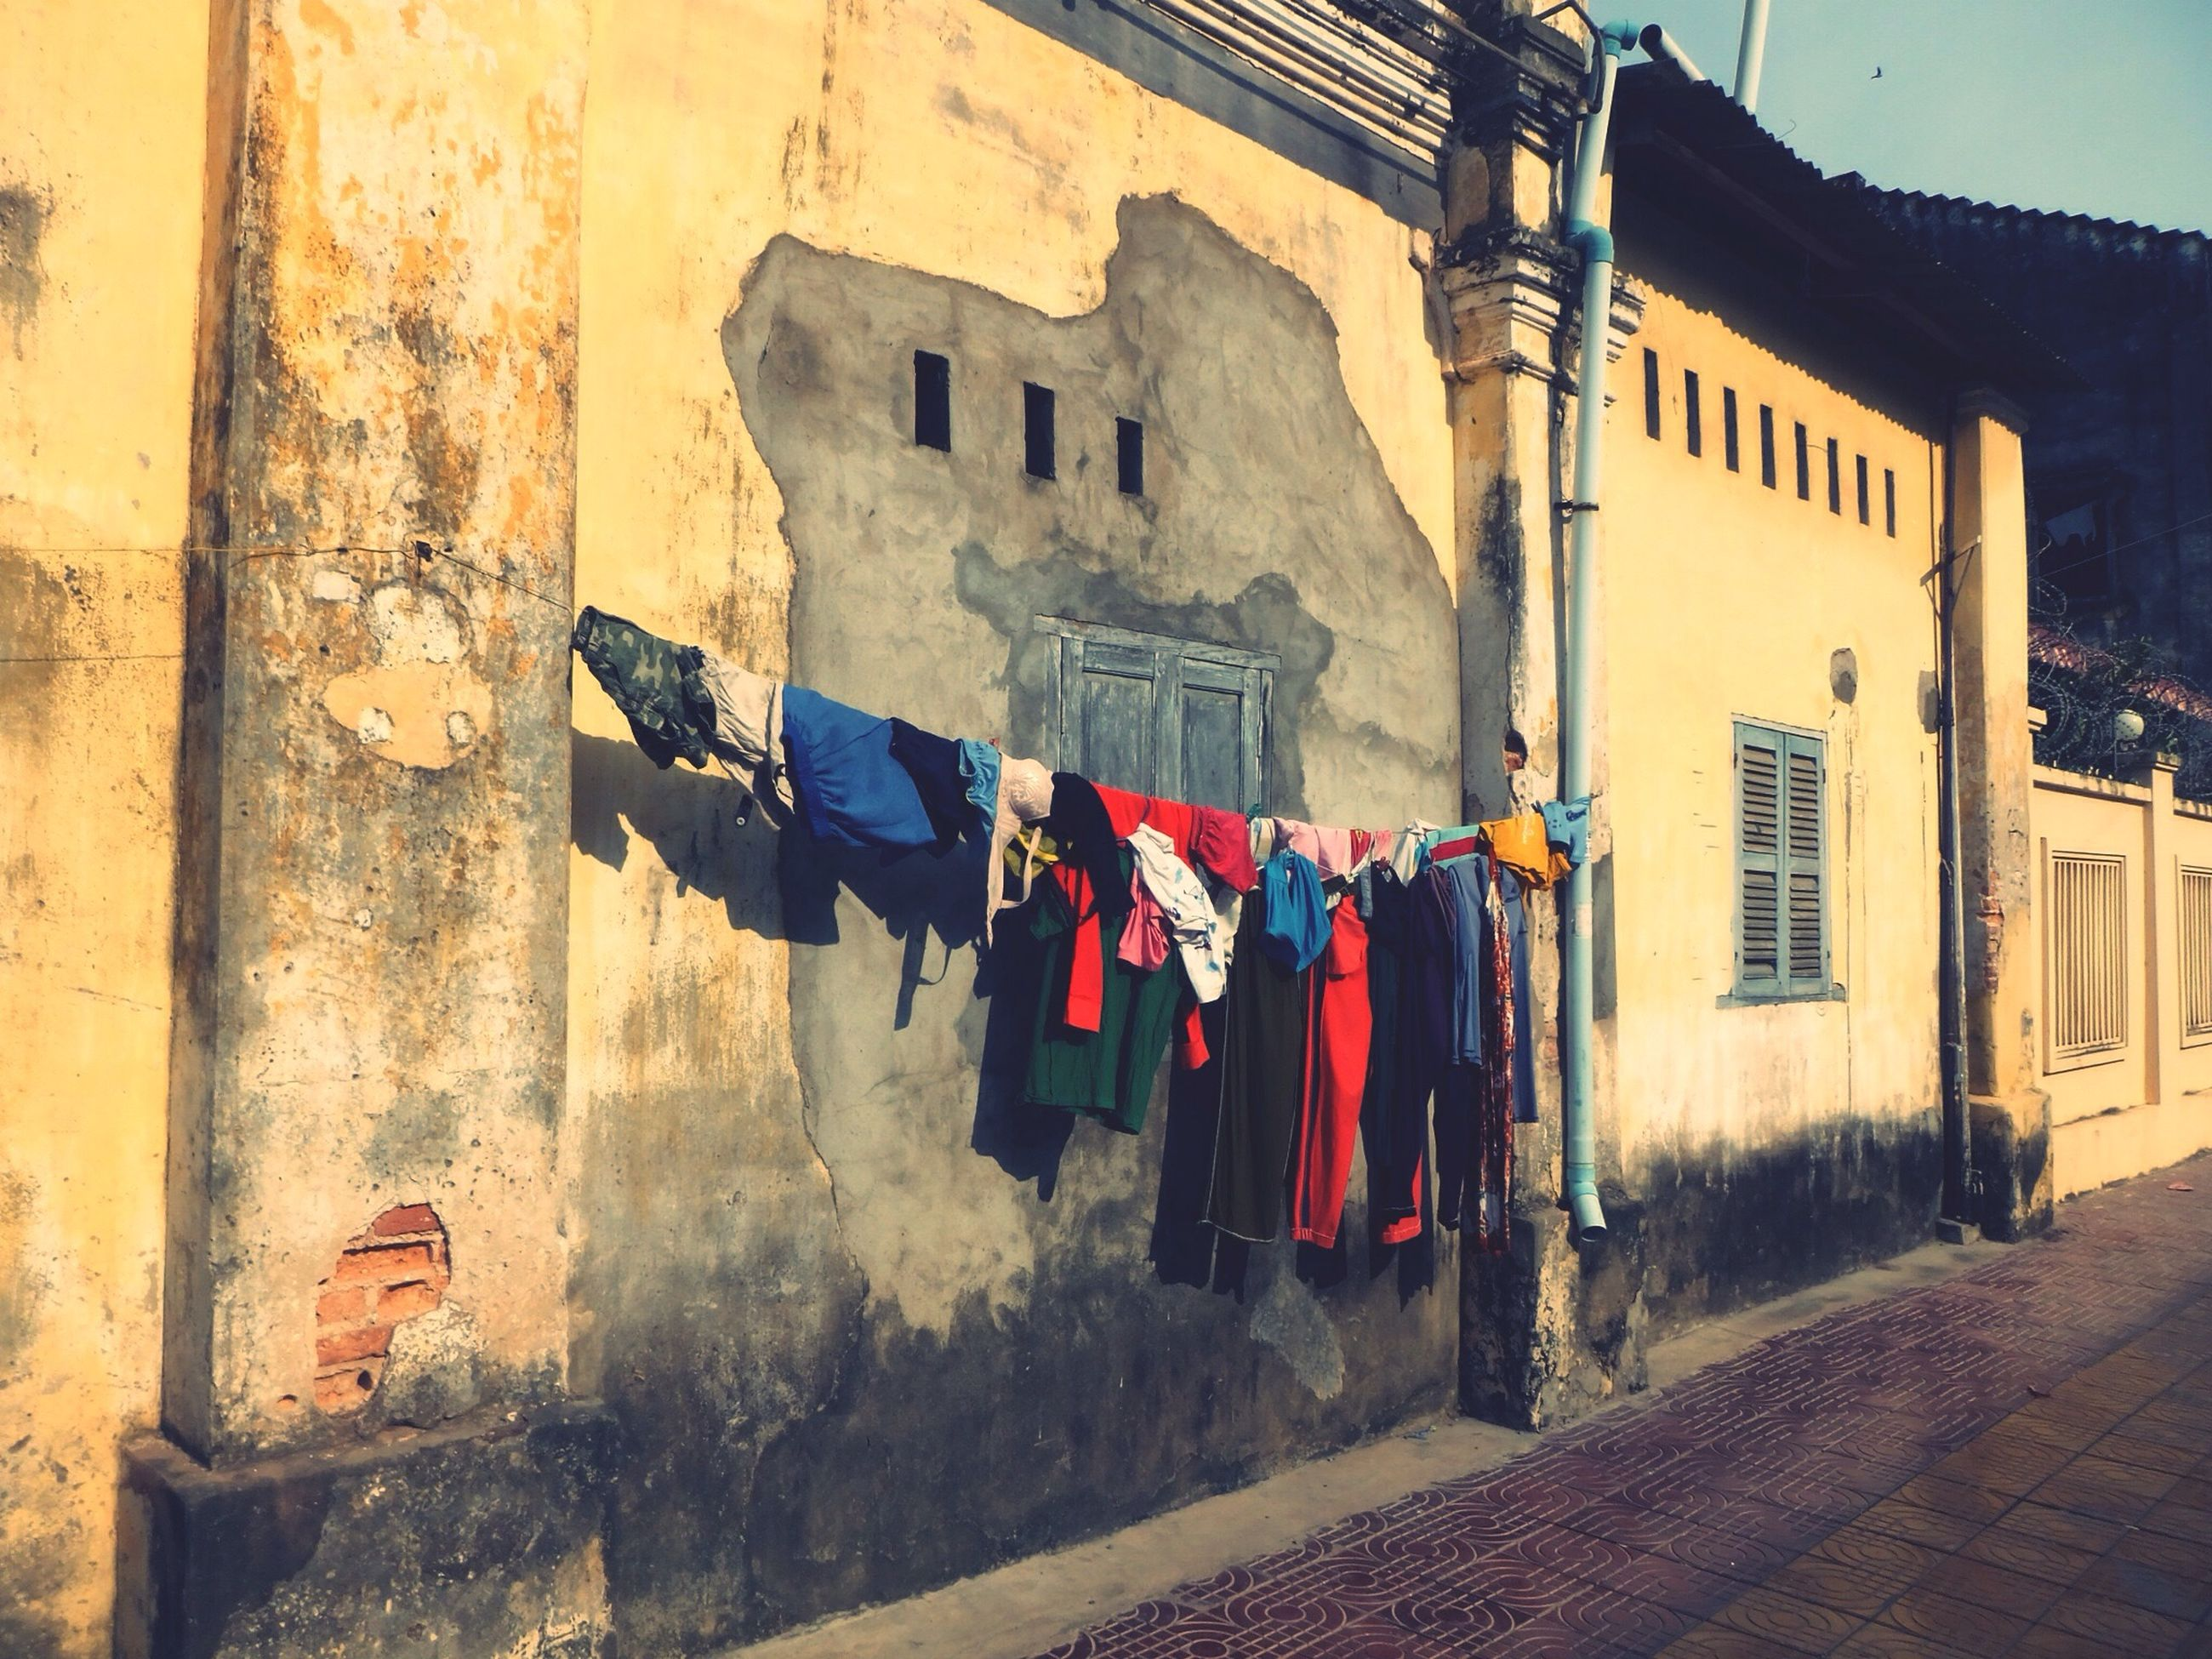 building exterior, architecture, built structure, multi colored, graffiti, residential building, wall - building feature, street, residential structure, house, day, building, outdoors, in a row, wall, no people, old, store, drying, variation